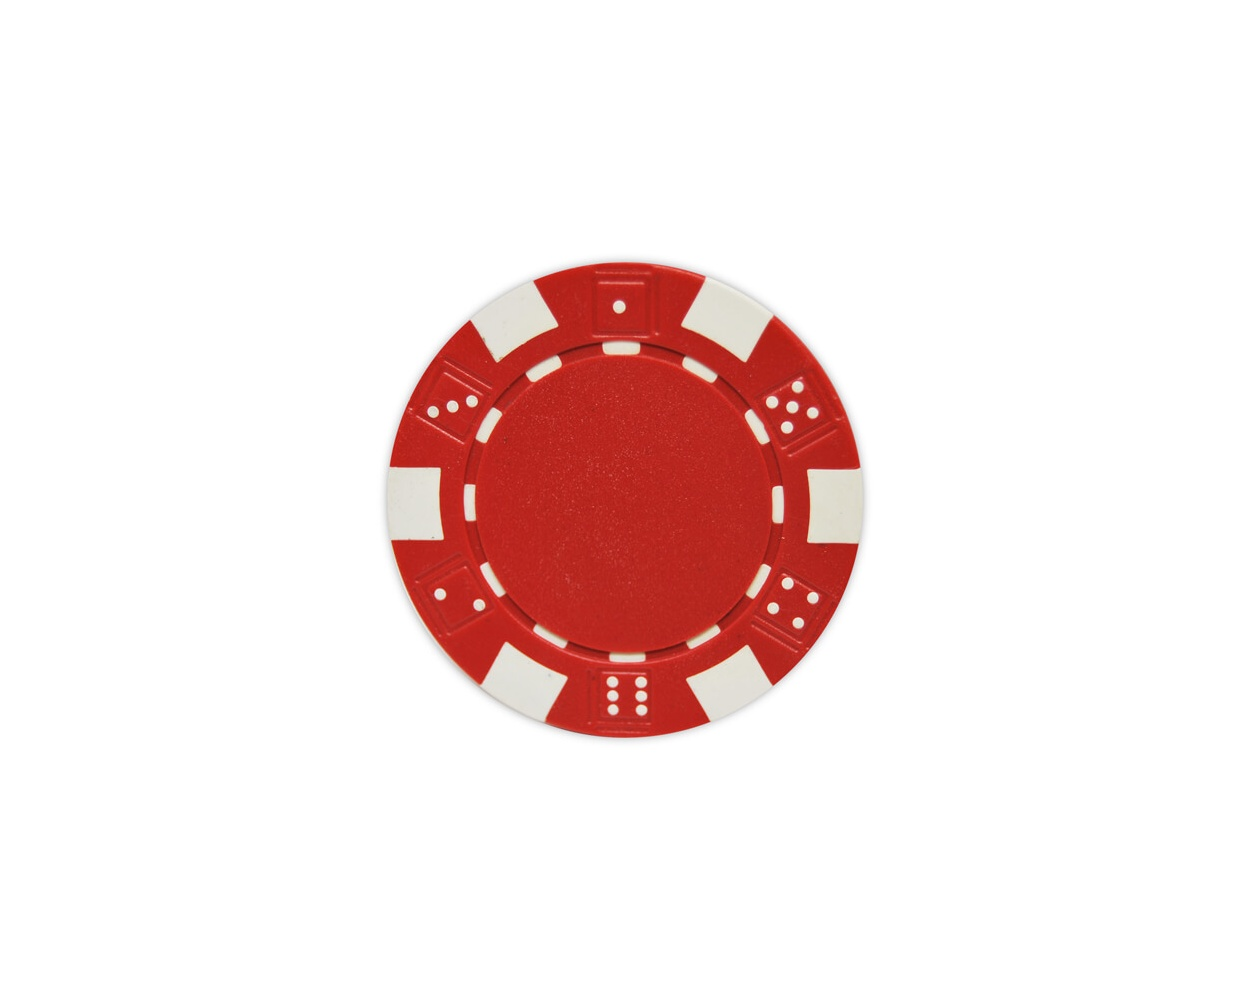 Striped Dice - Red Clay Poker Chips